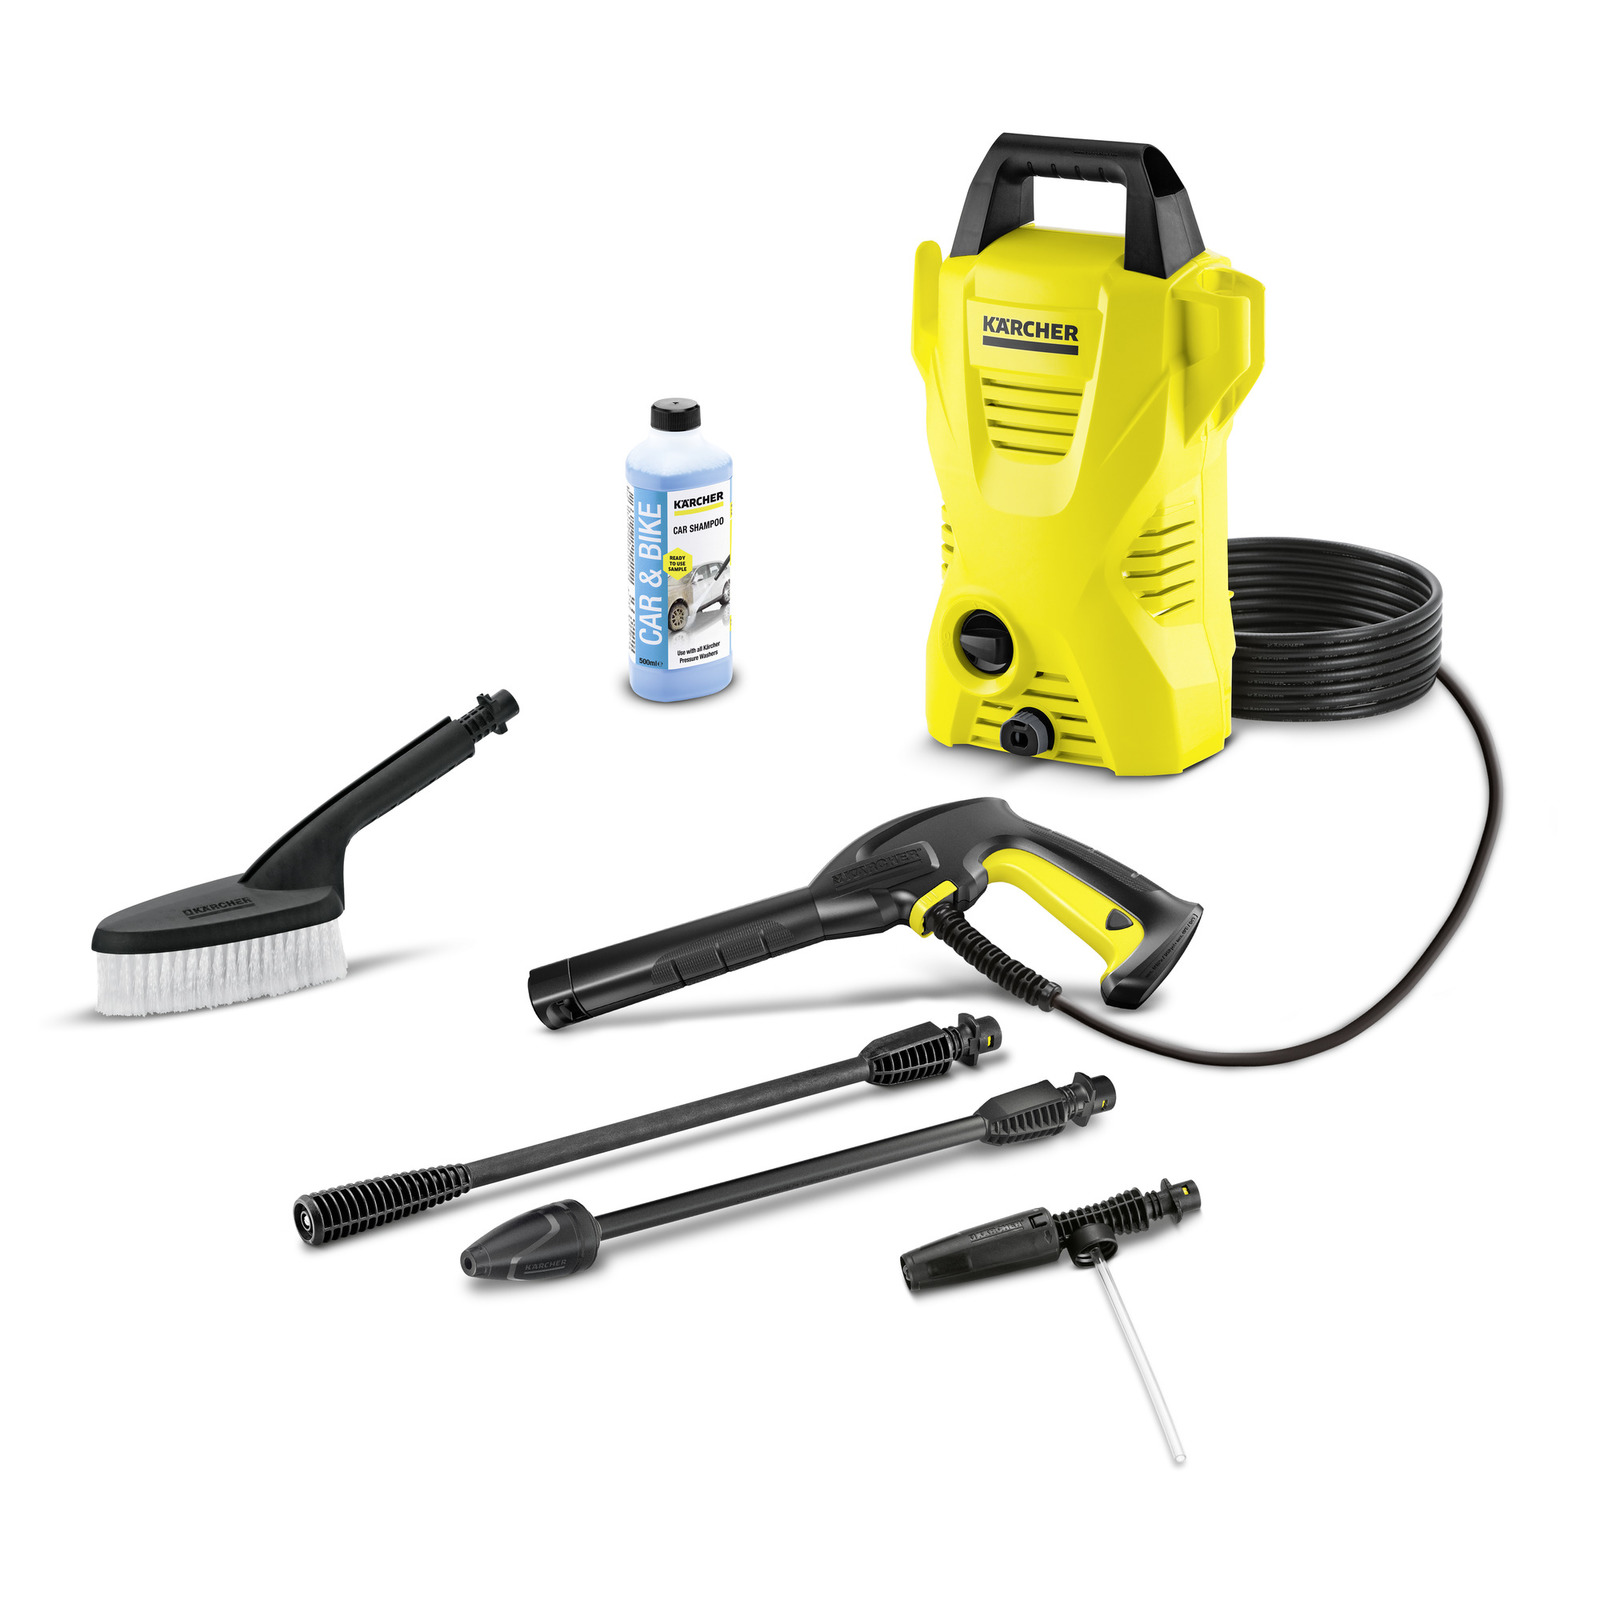 Lot 50033 - V Brand New Karcher K2 Compact Car High Pressure Cleaner With Wash Brush - Foam Nozzle & Car Shampoo